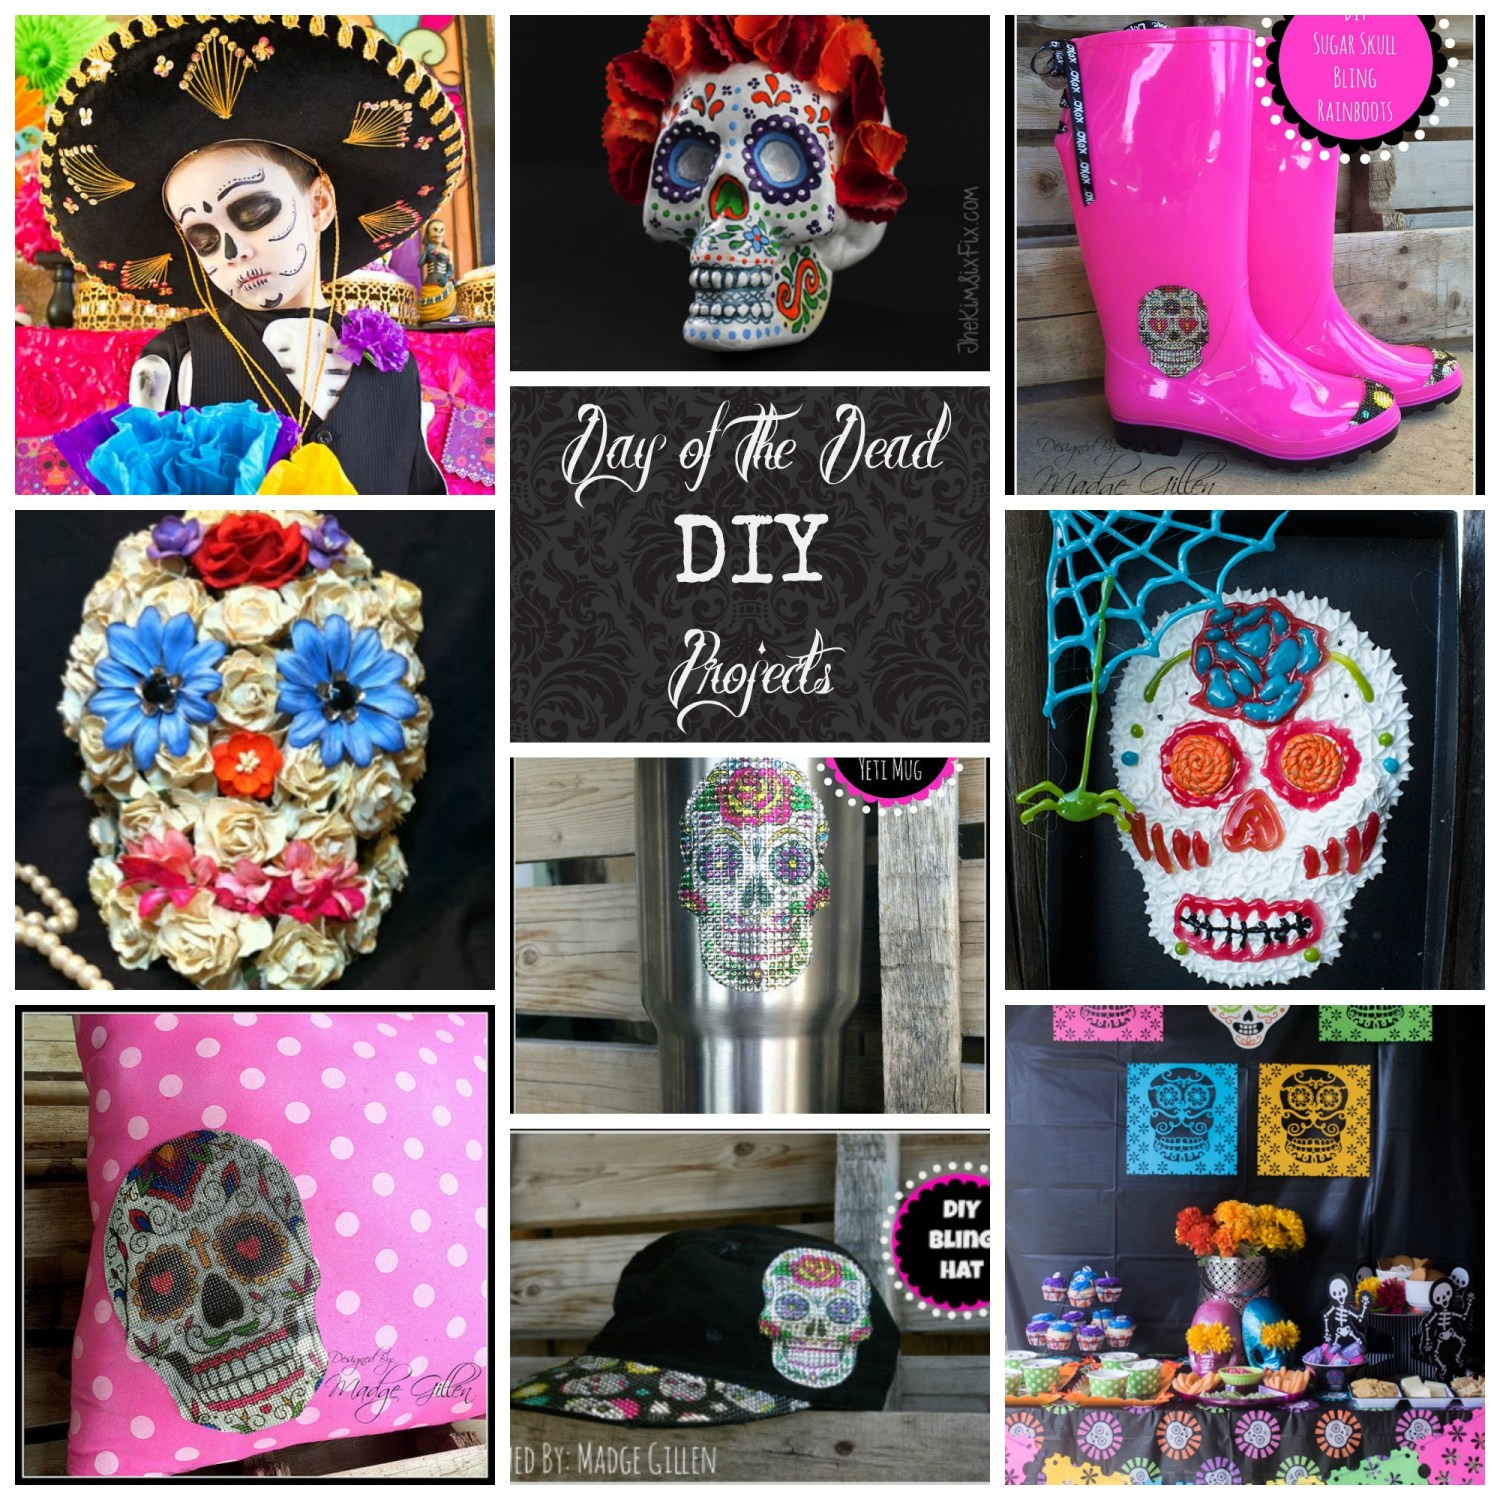 Day of the Dead collage